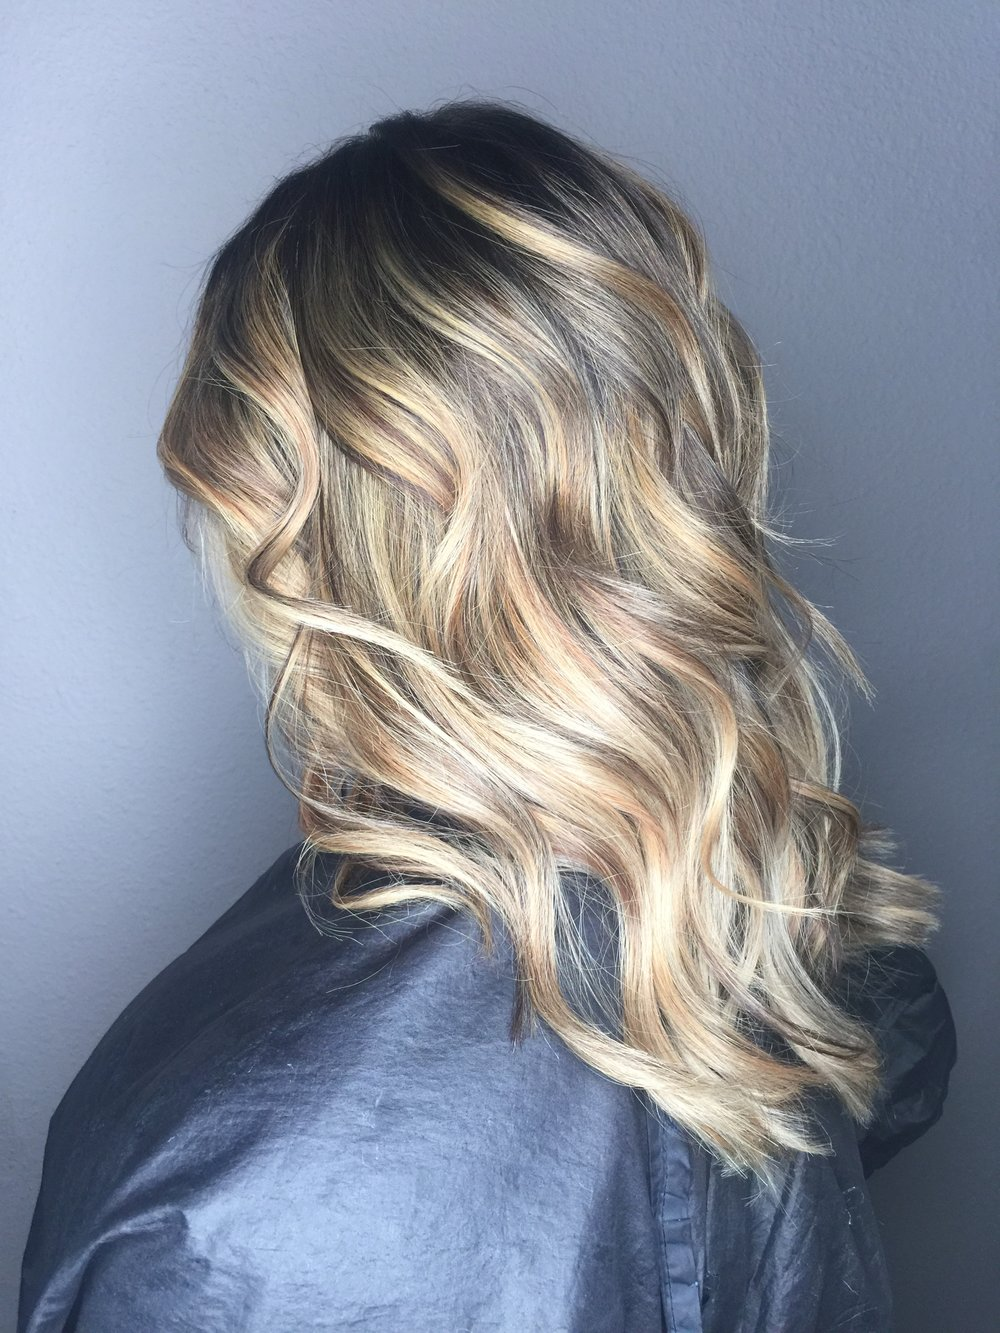 Hair - Before & Afters of cut, color, balayage etc.